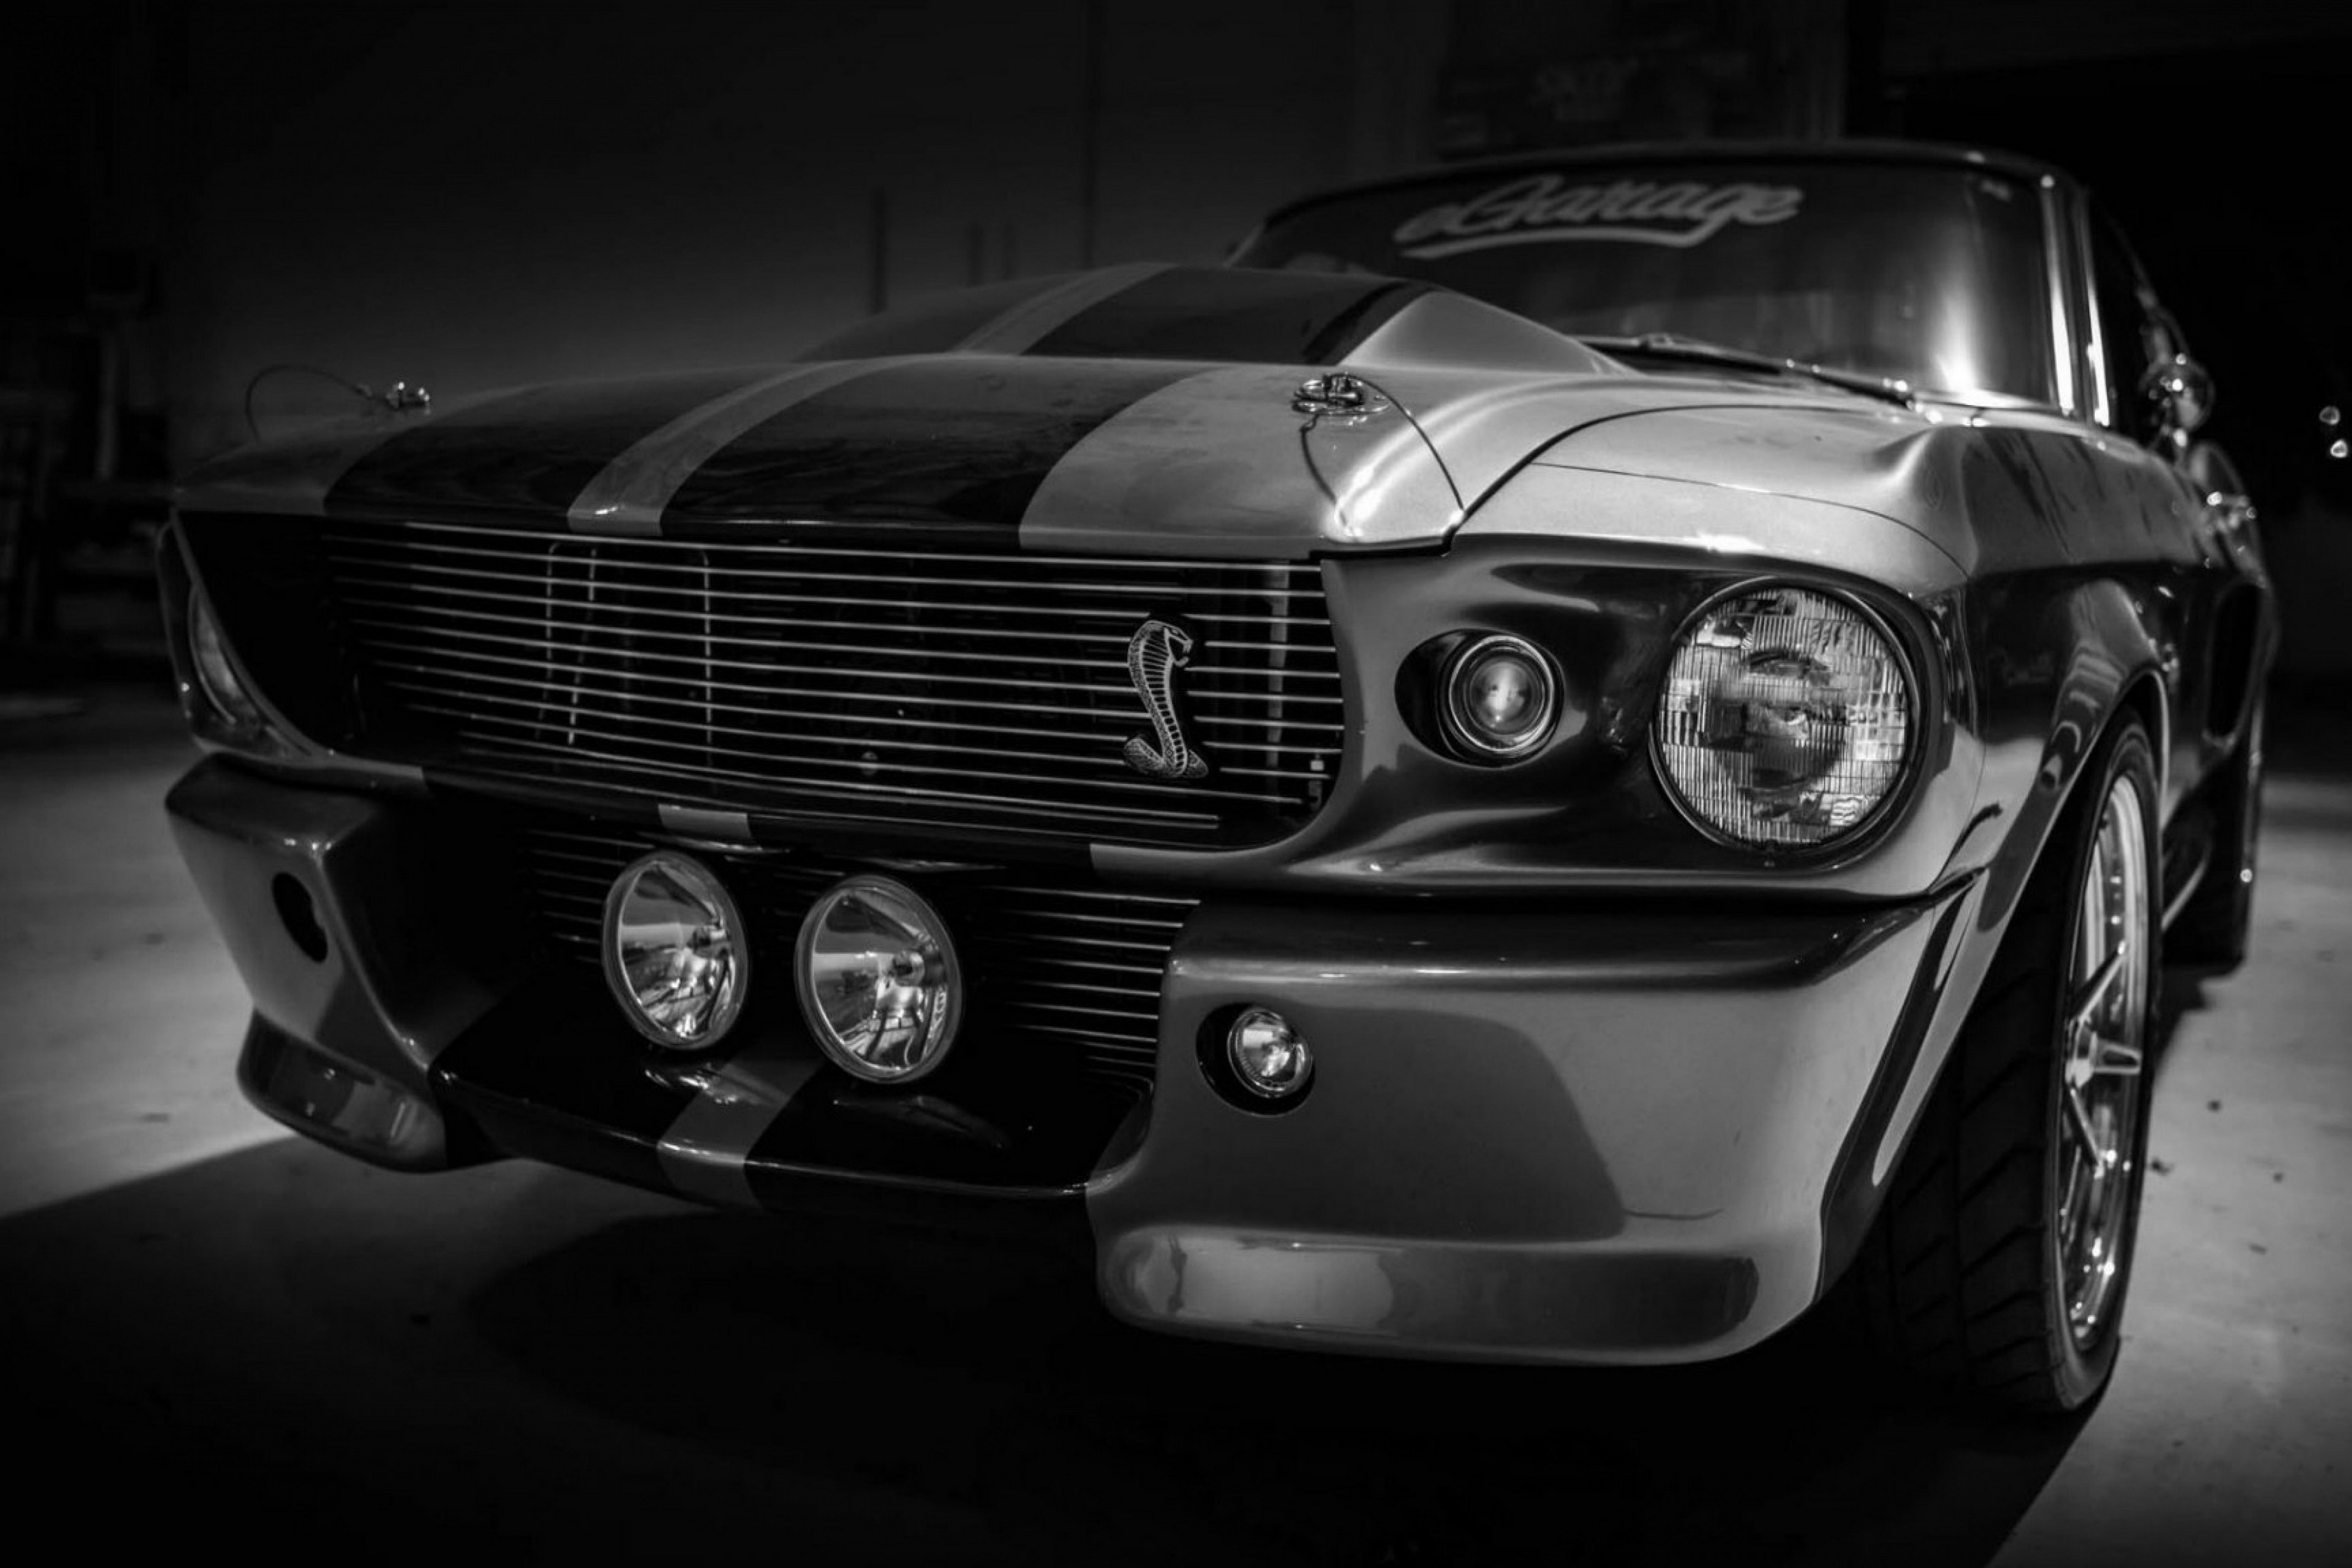 Home Decoration Ford Mustang Cars Silk Fabric Poster Print Hc074 China Mainland